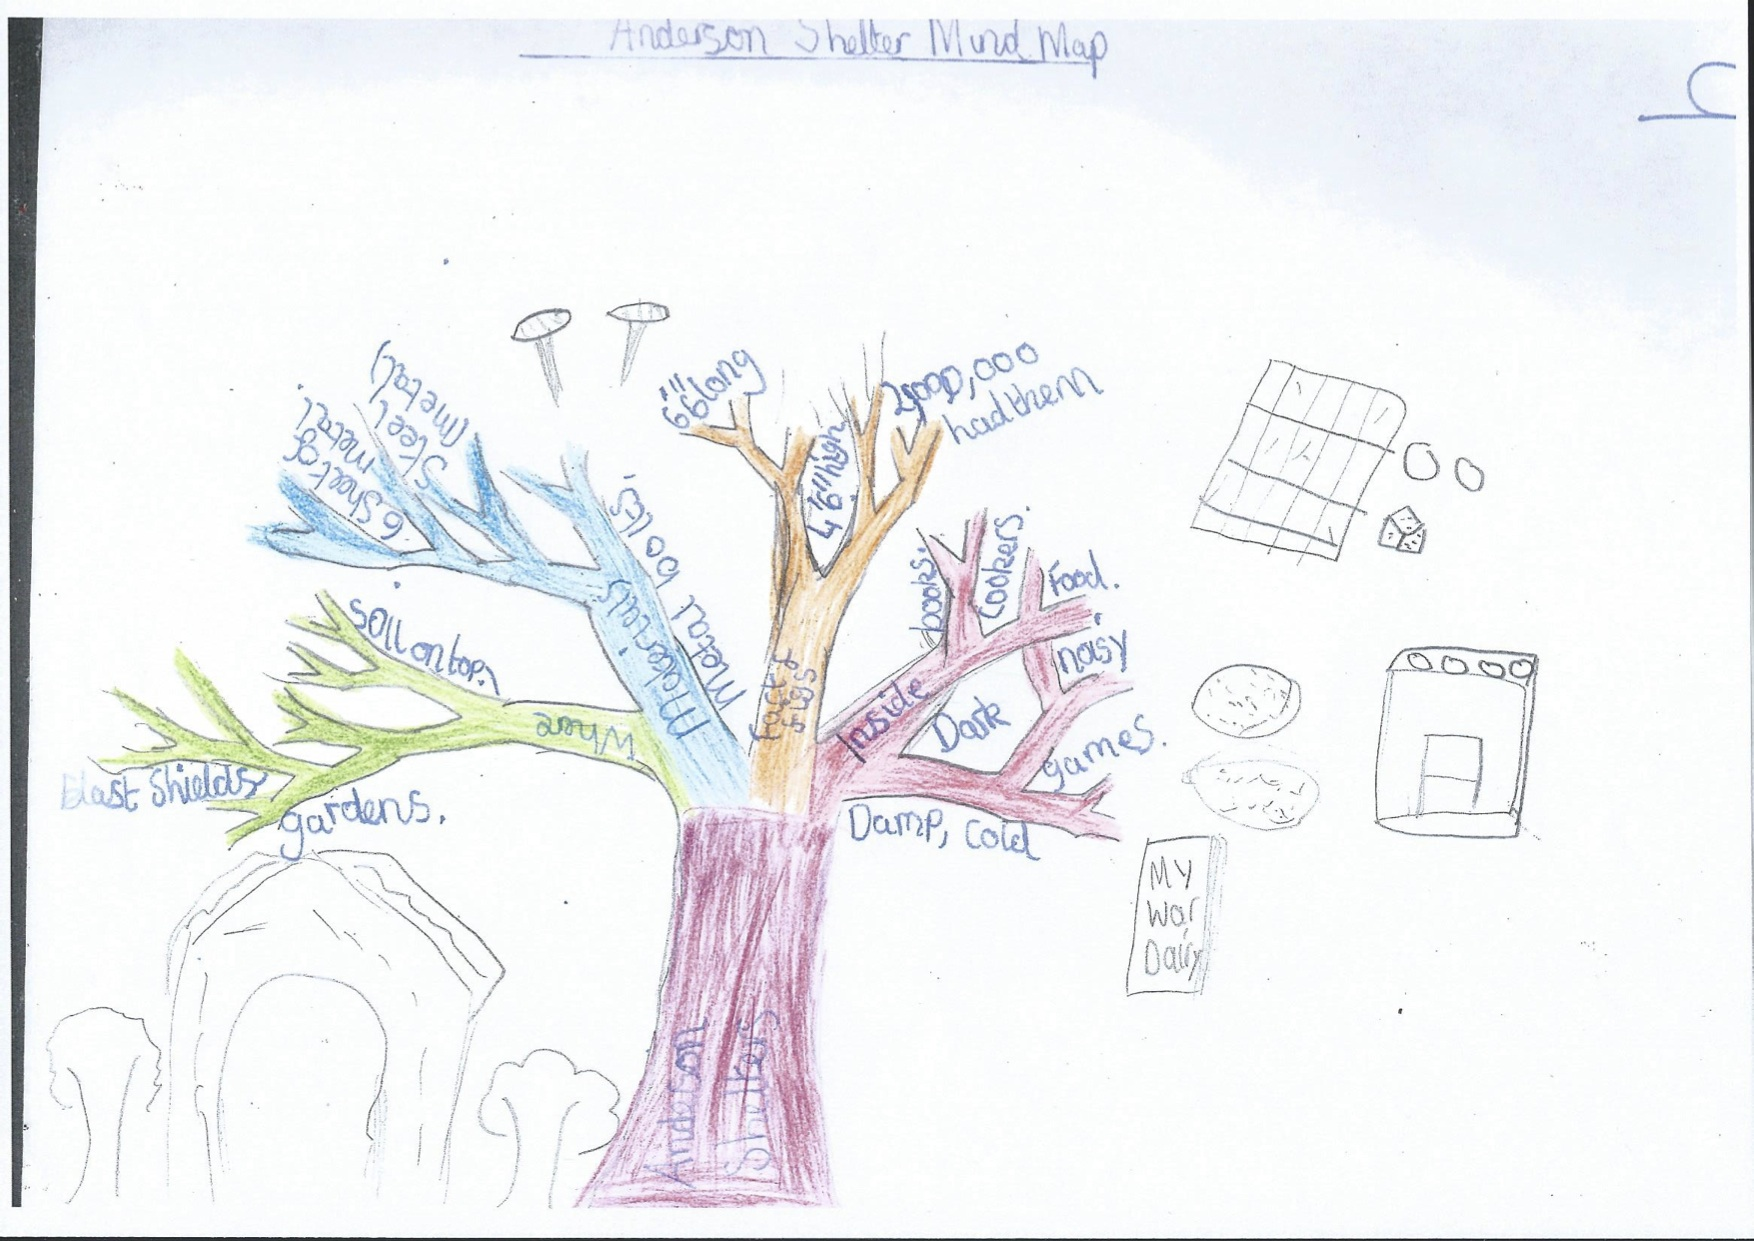 Idea Maps Or Mind Maps 456 457 From 9 11 Year Old Children Idea